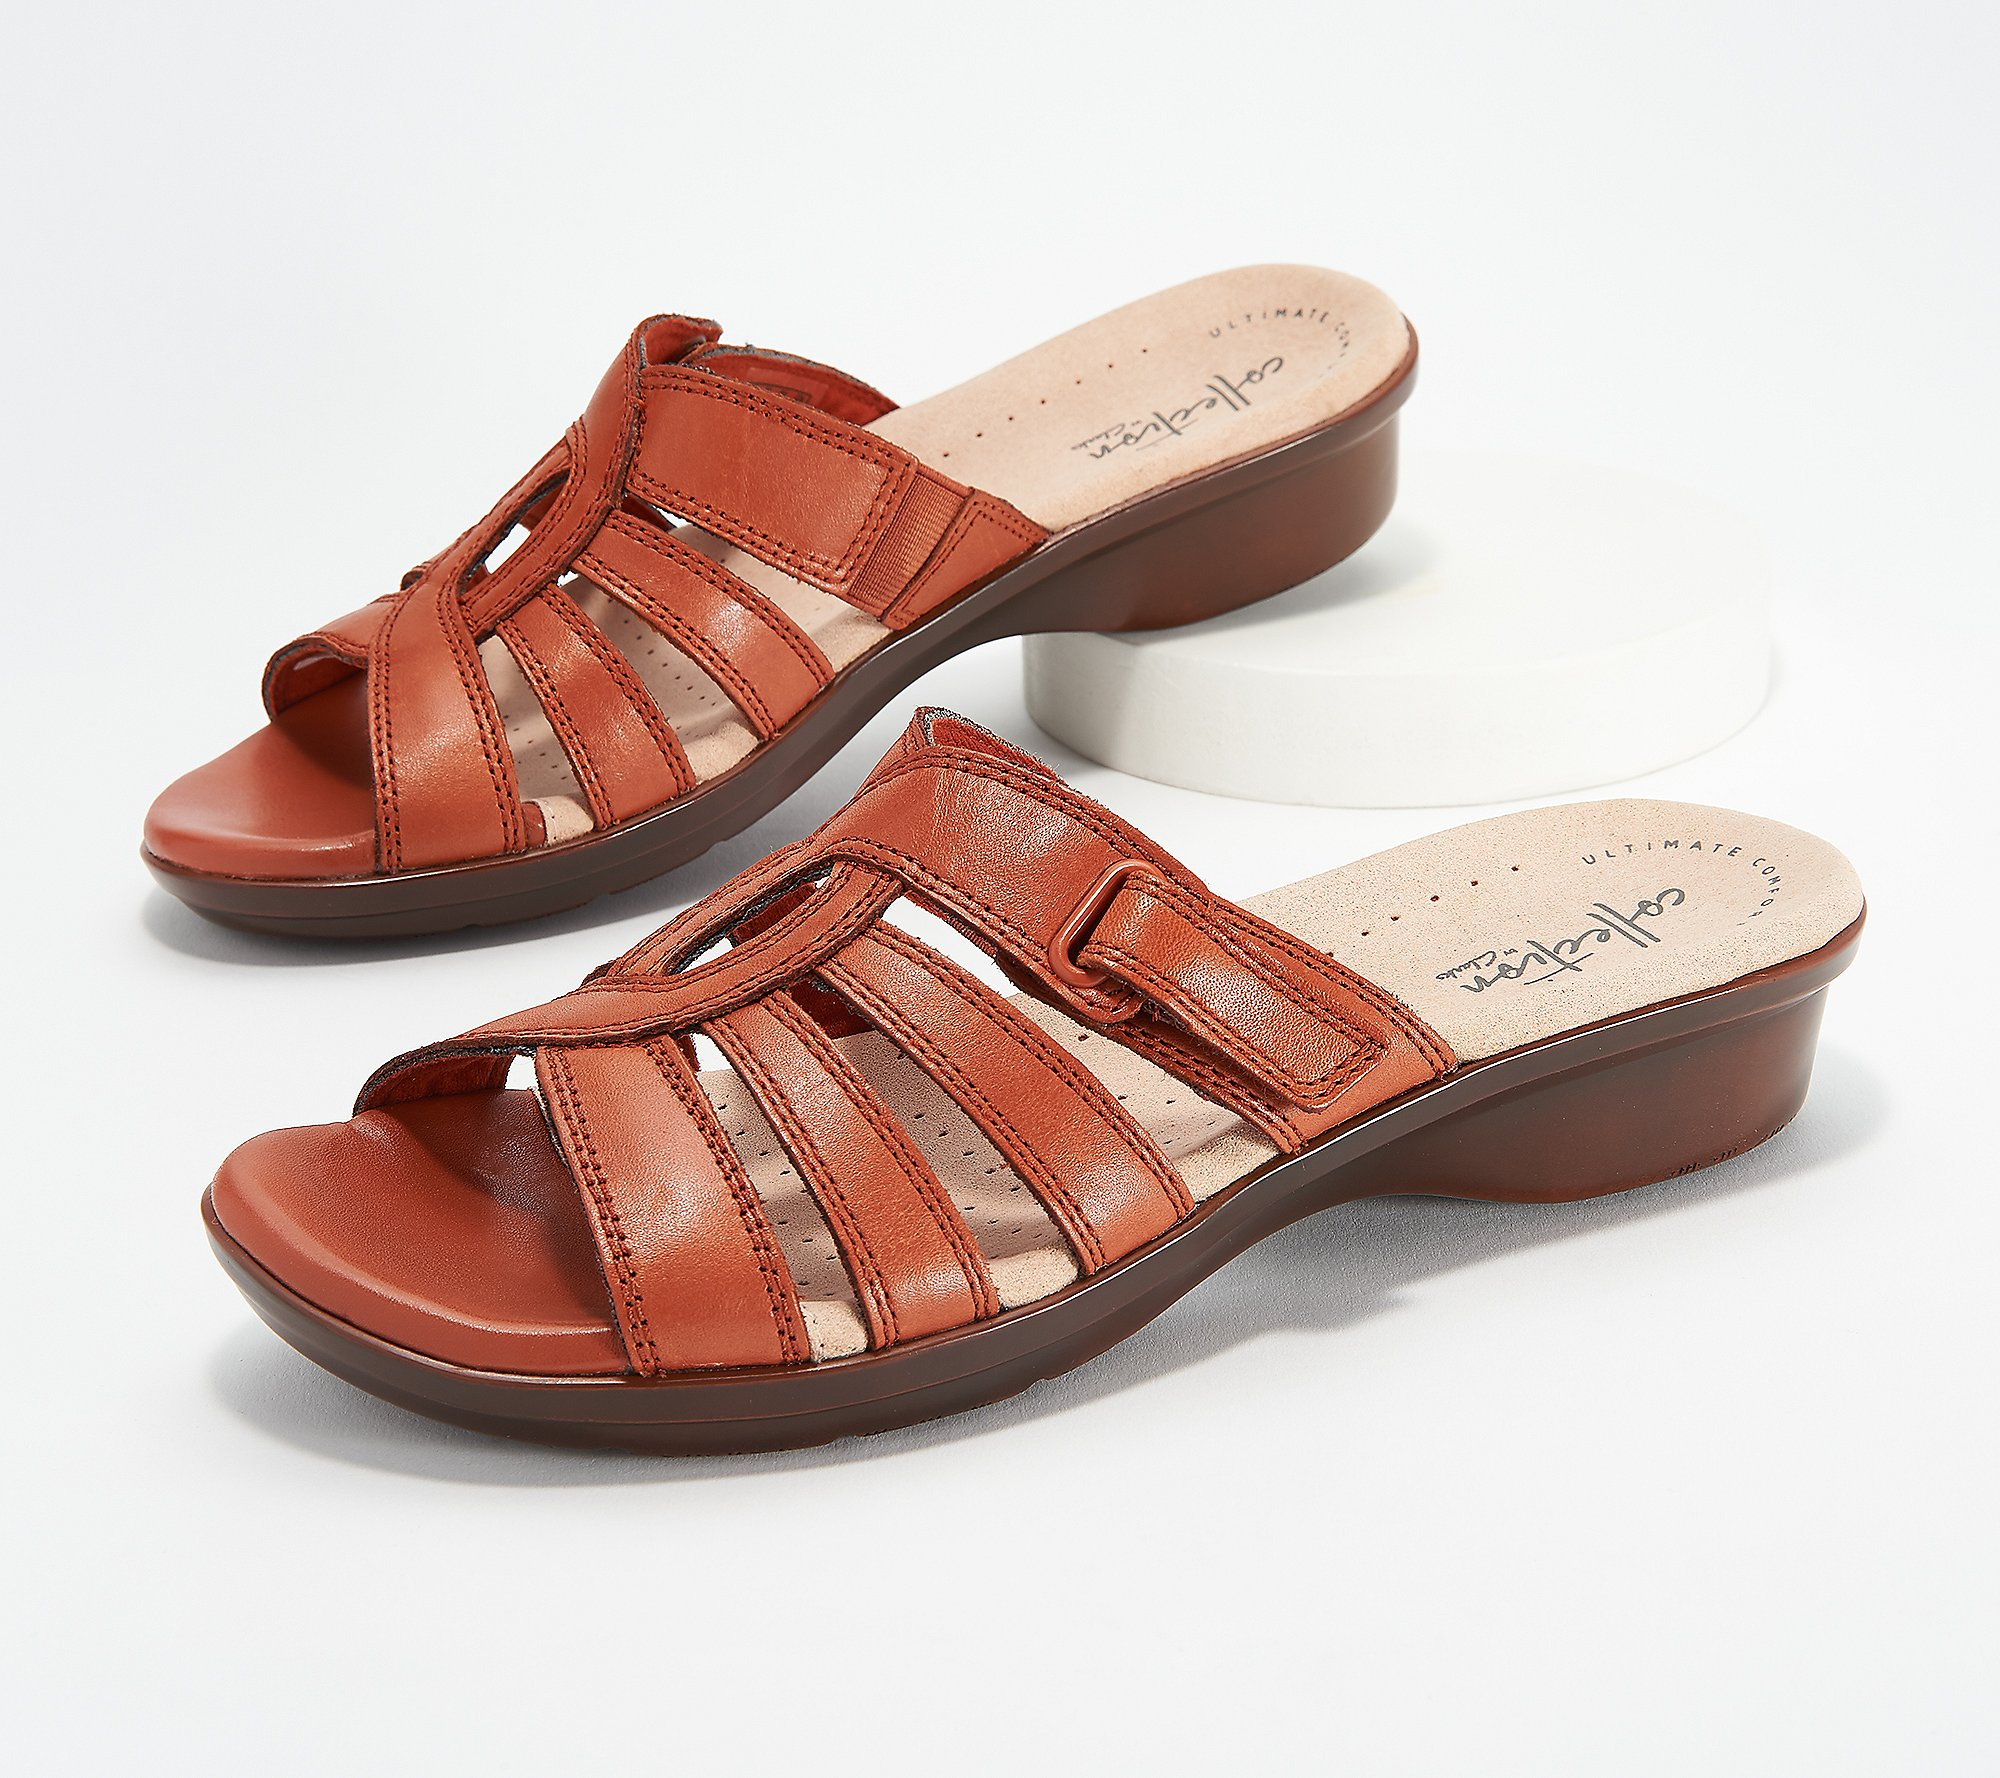 calidad alquiler miel  Clarks Collection Leather Slide Sandals - Loomis Gale - QVC.com